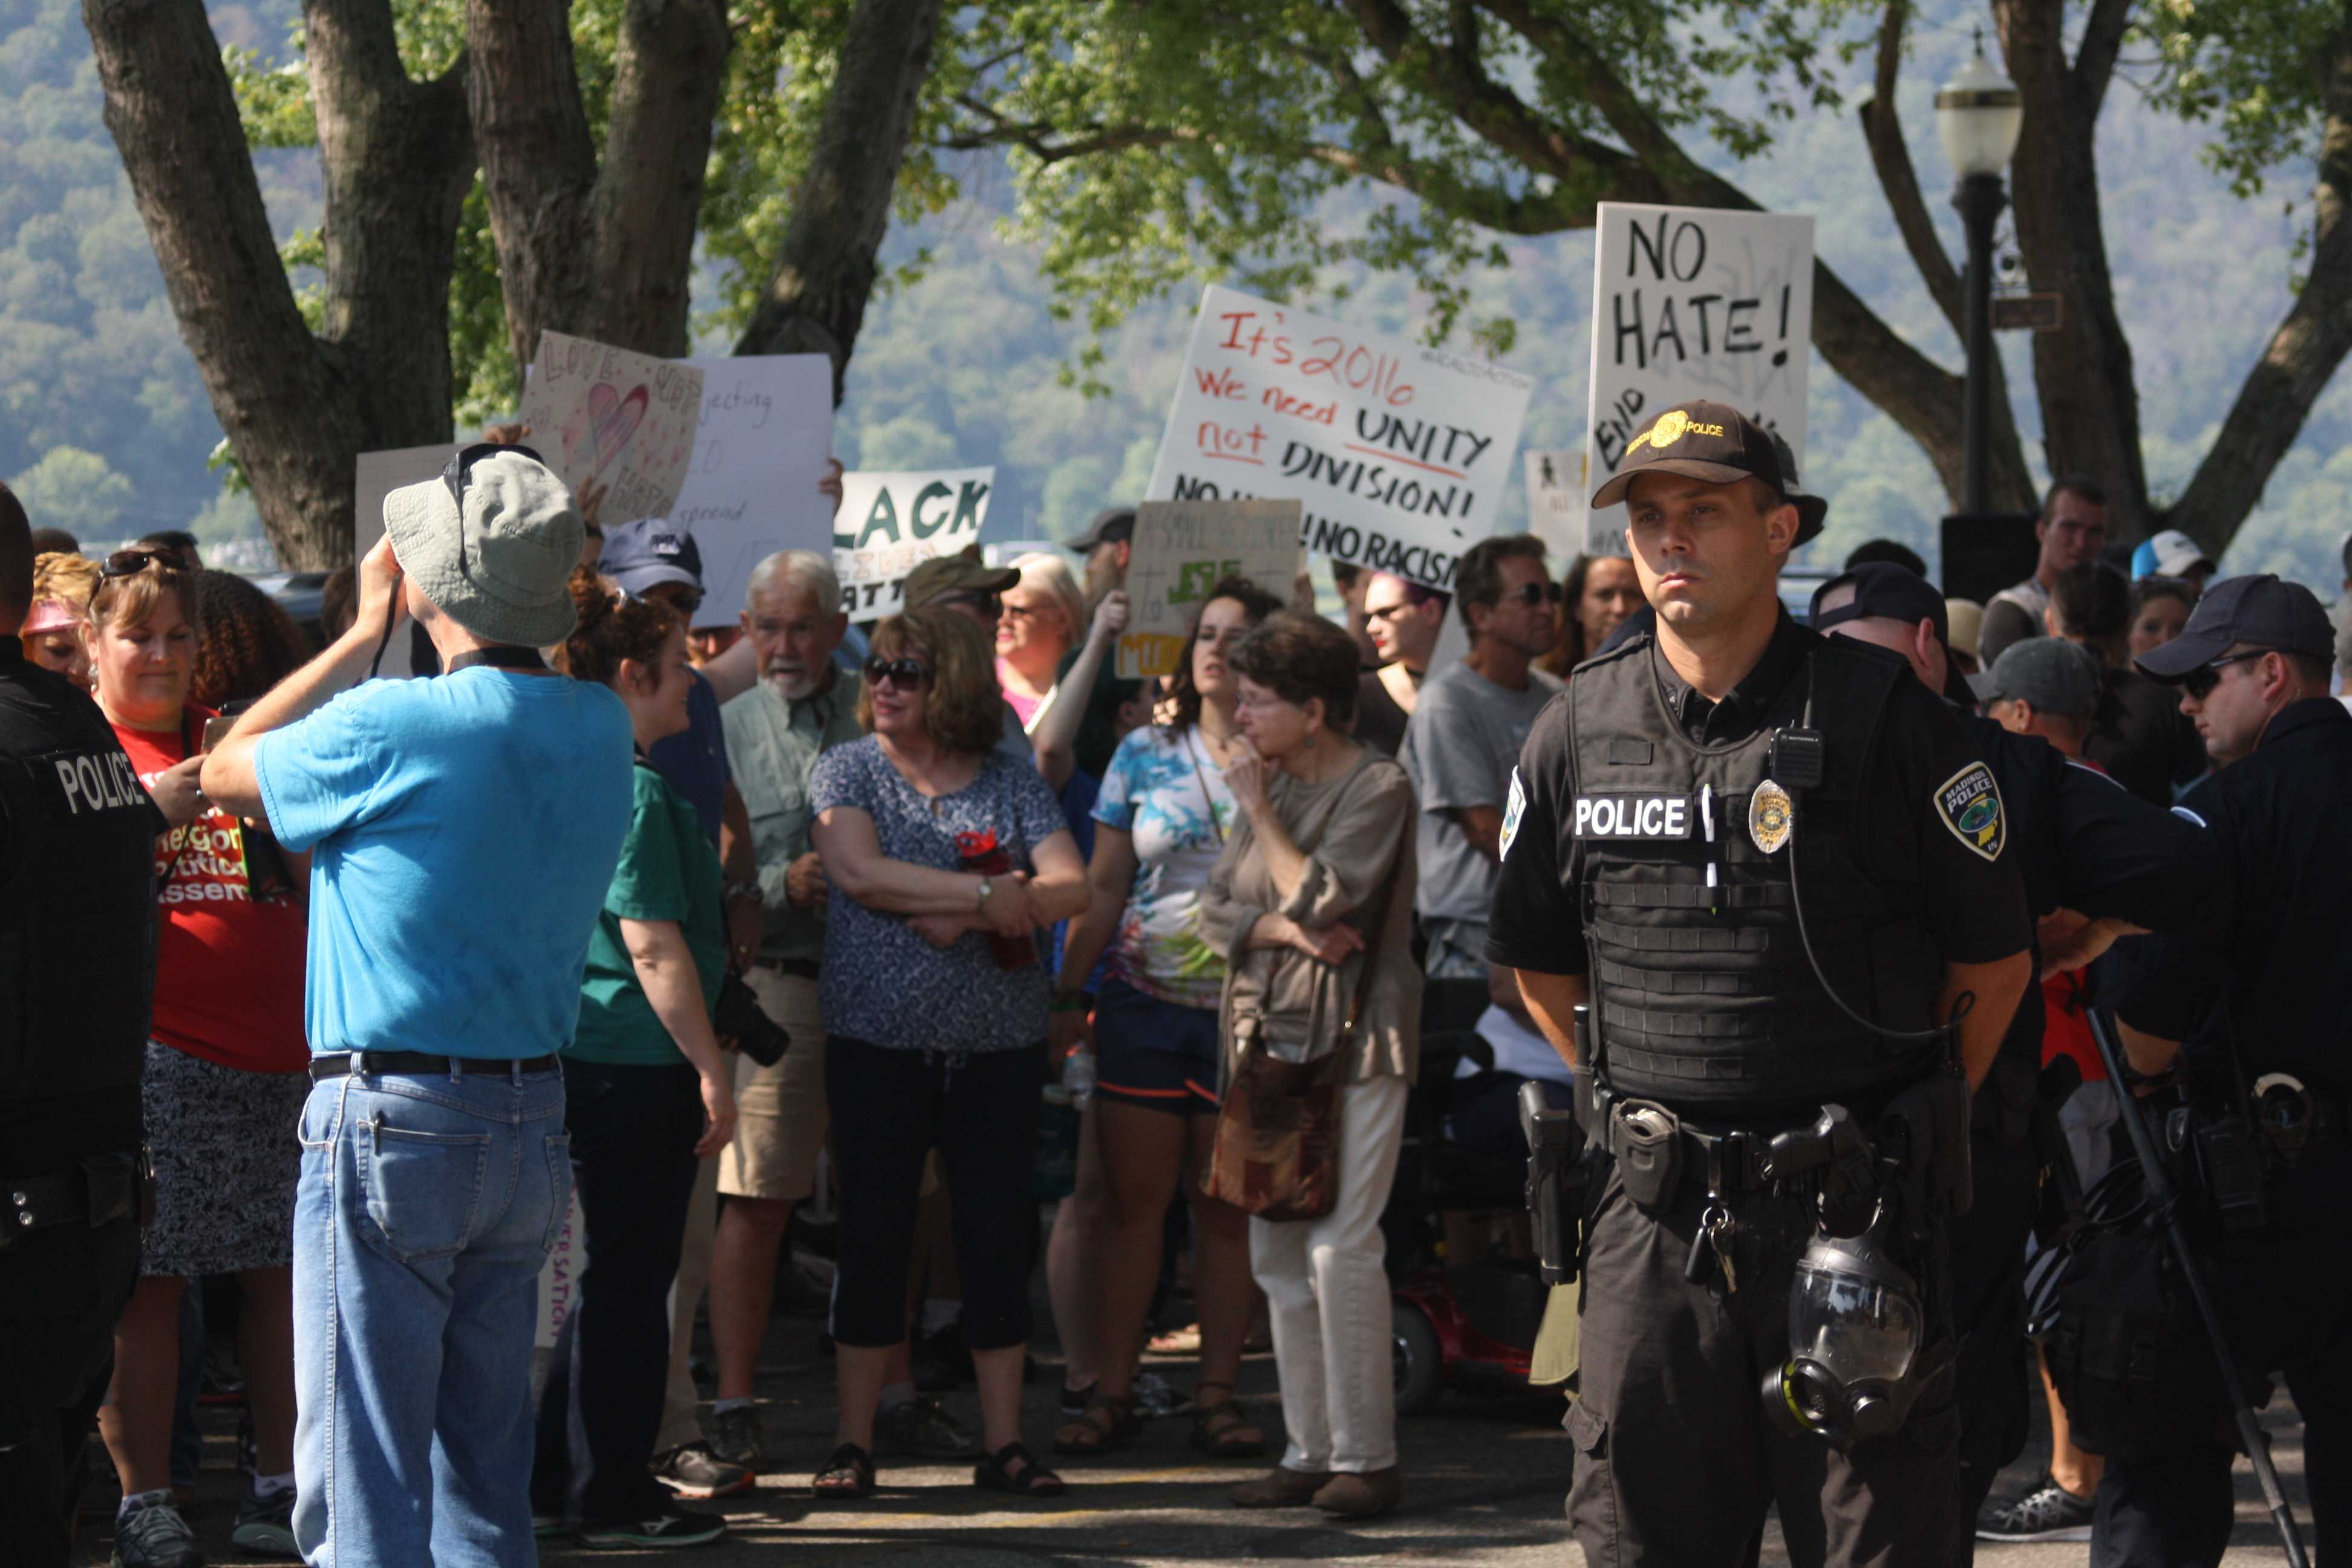 Protesters stand behind police officers. Photo by Phoebe Monsour.